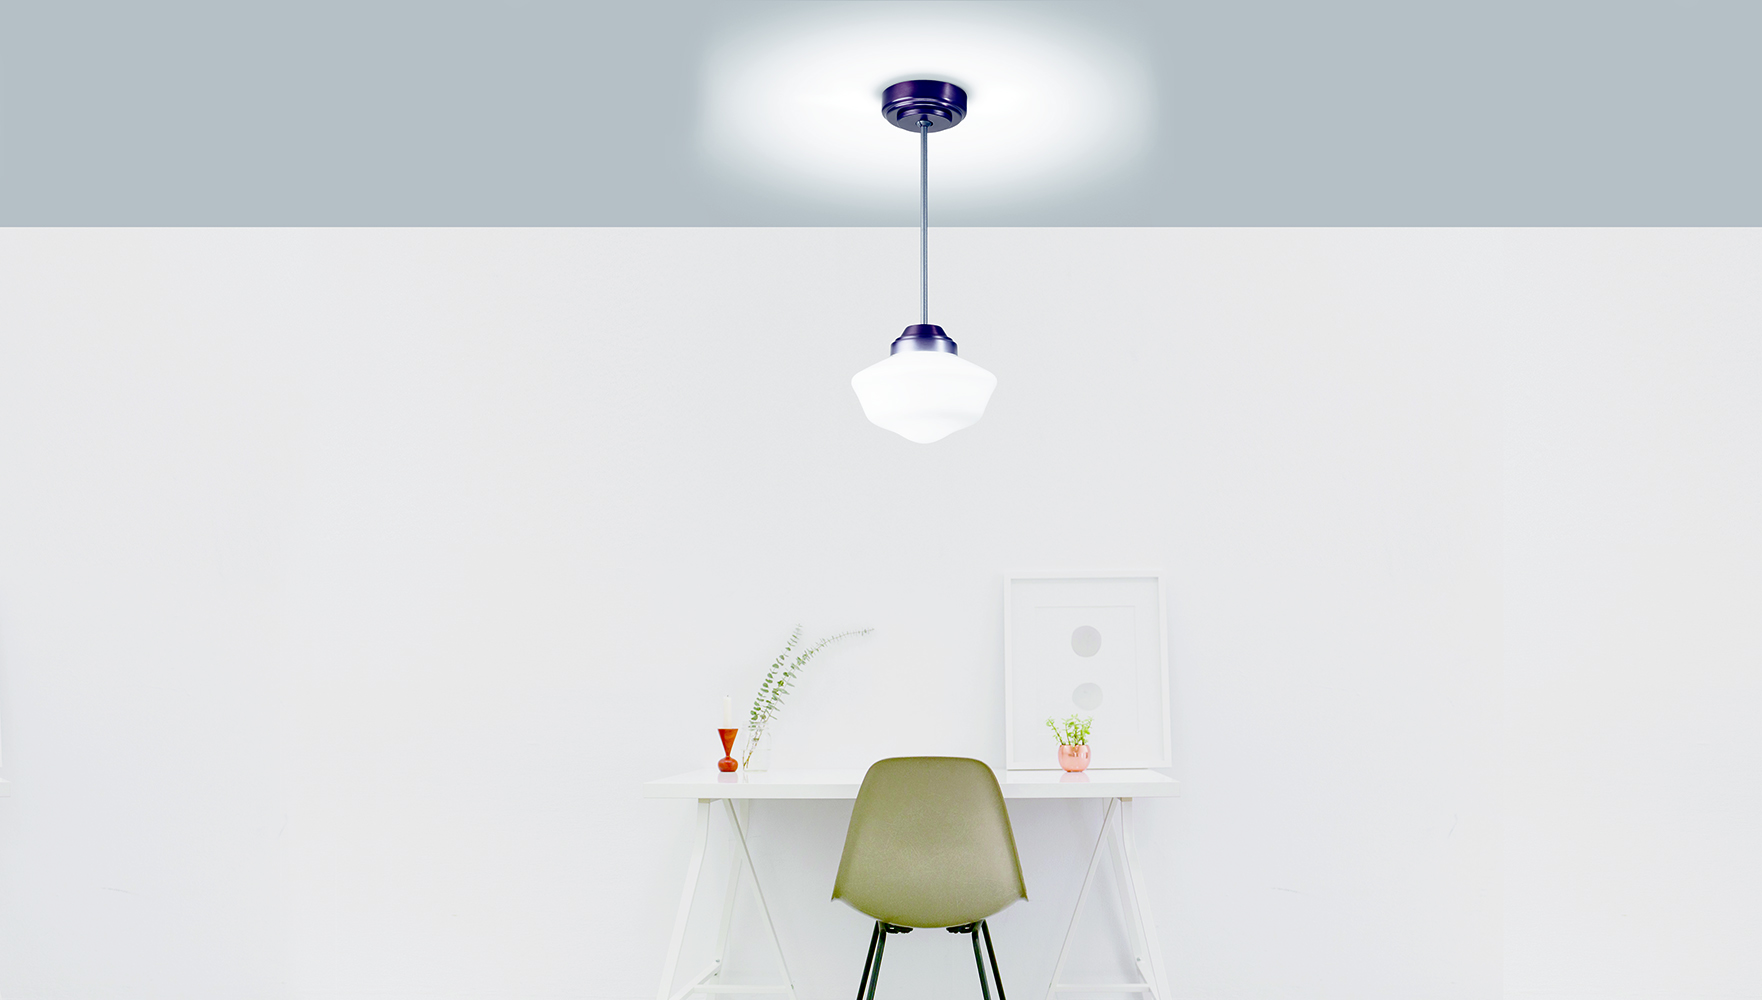 School Haus pendant in hospitality lighting design above a small desk area.